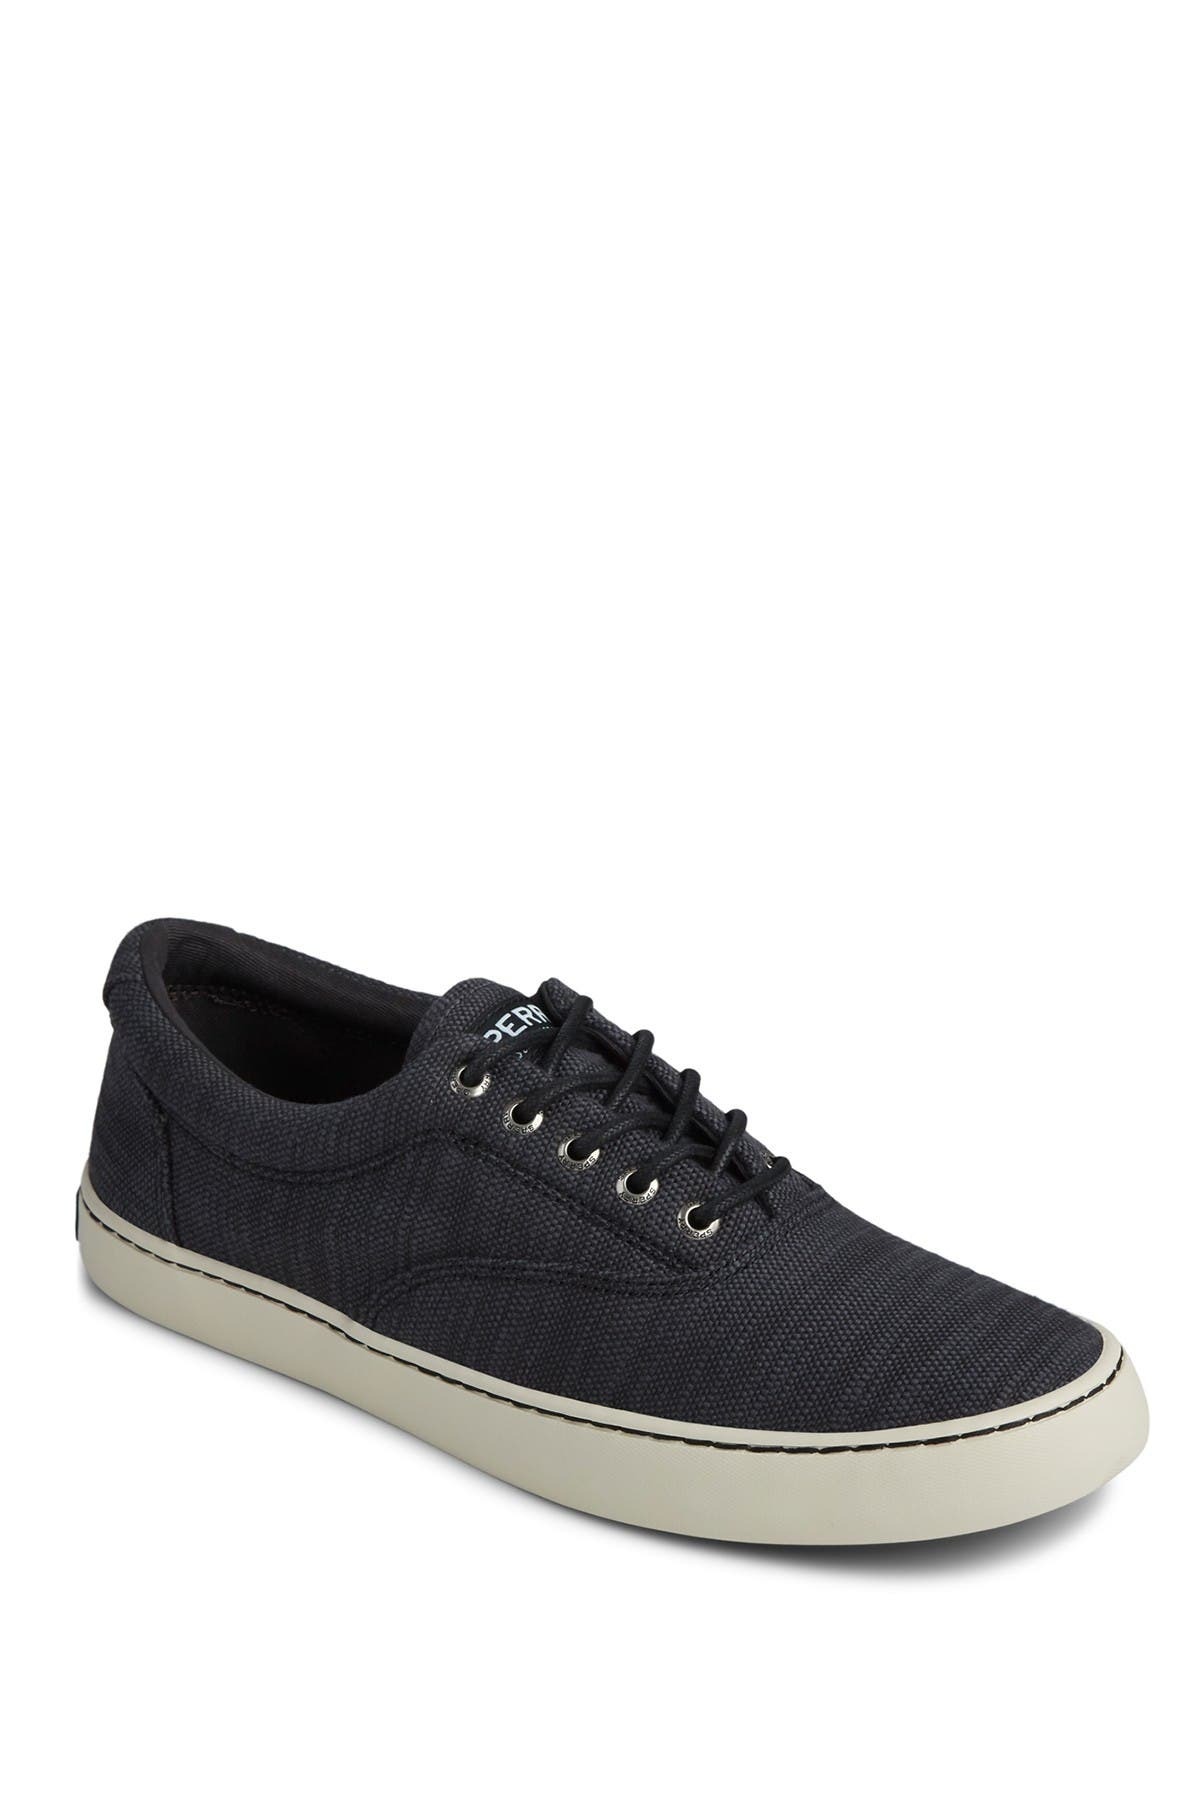 Image of Sperry Cutter CVO Sneaker